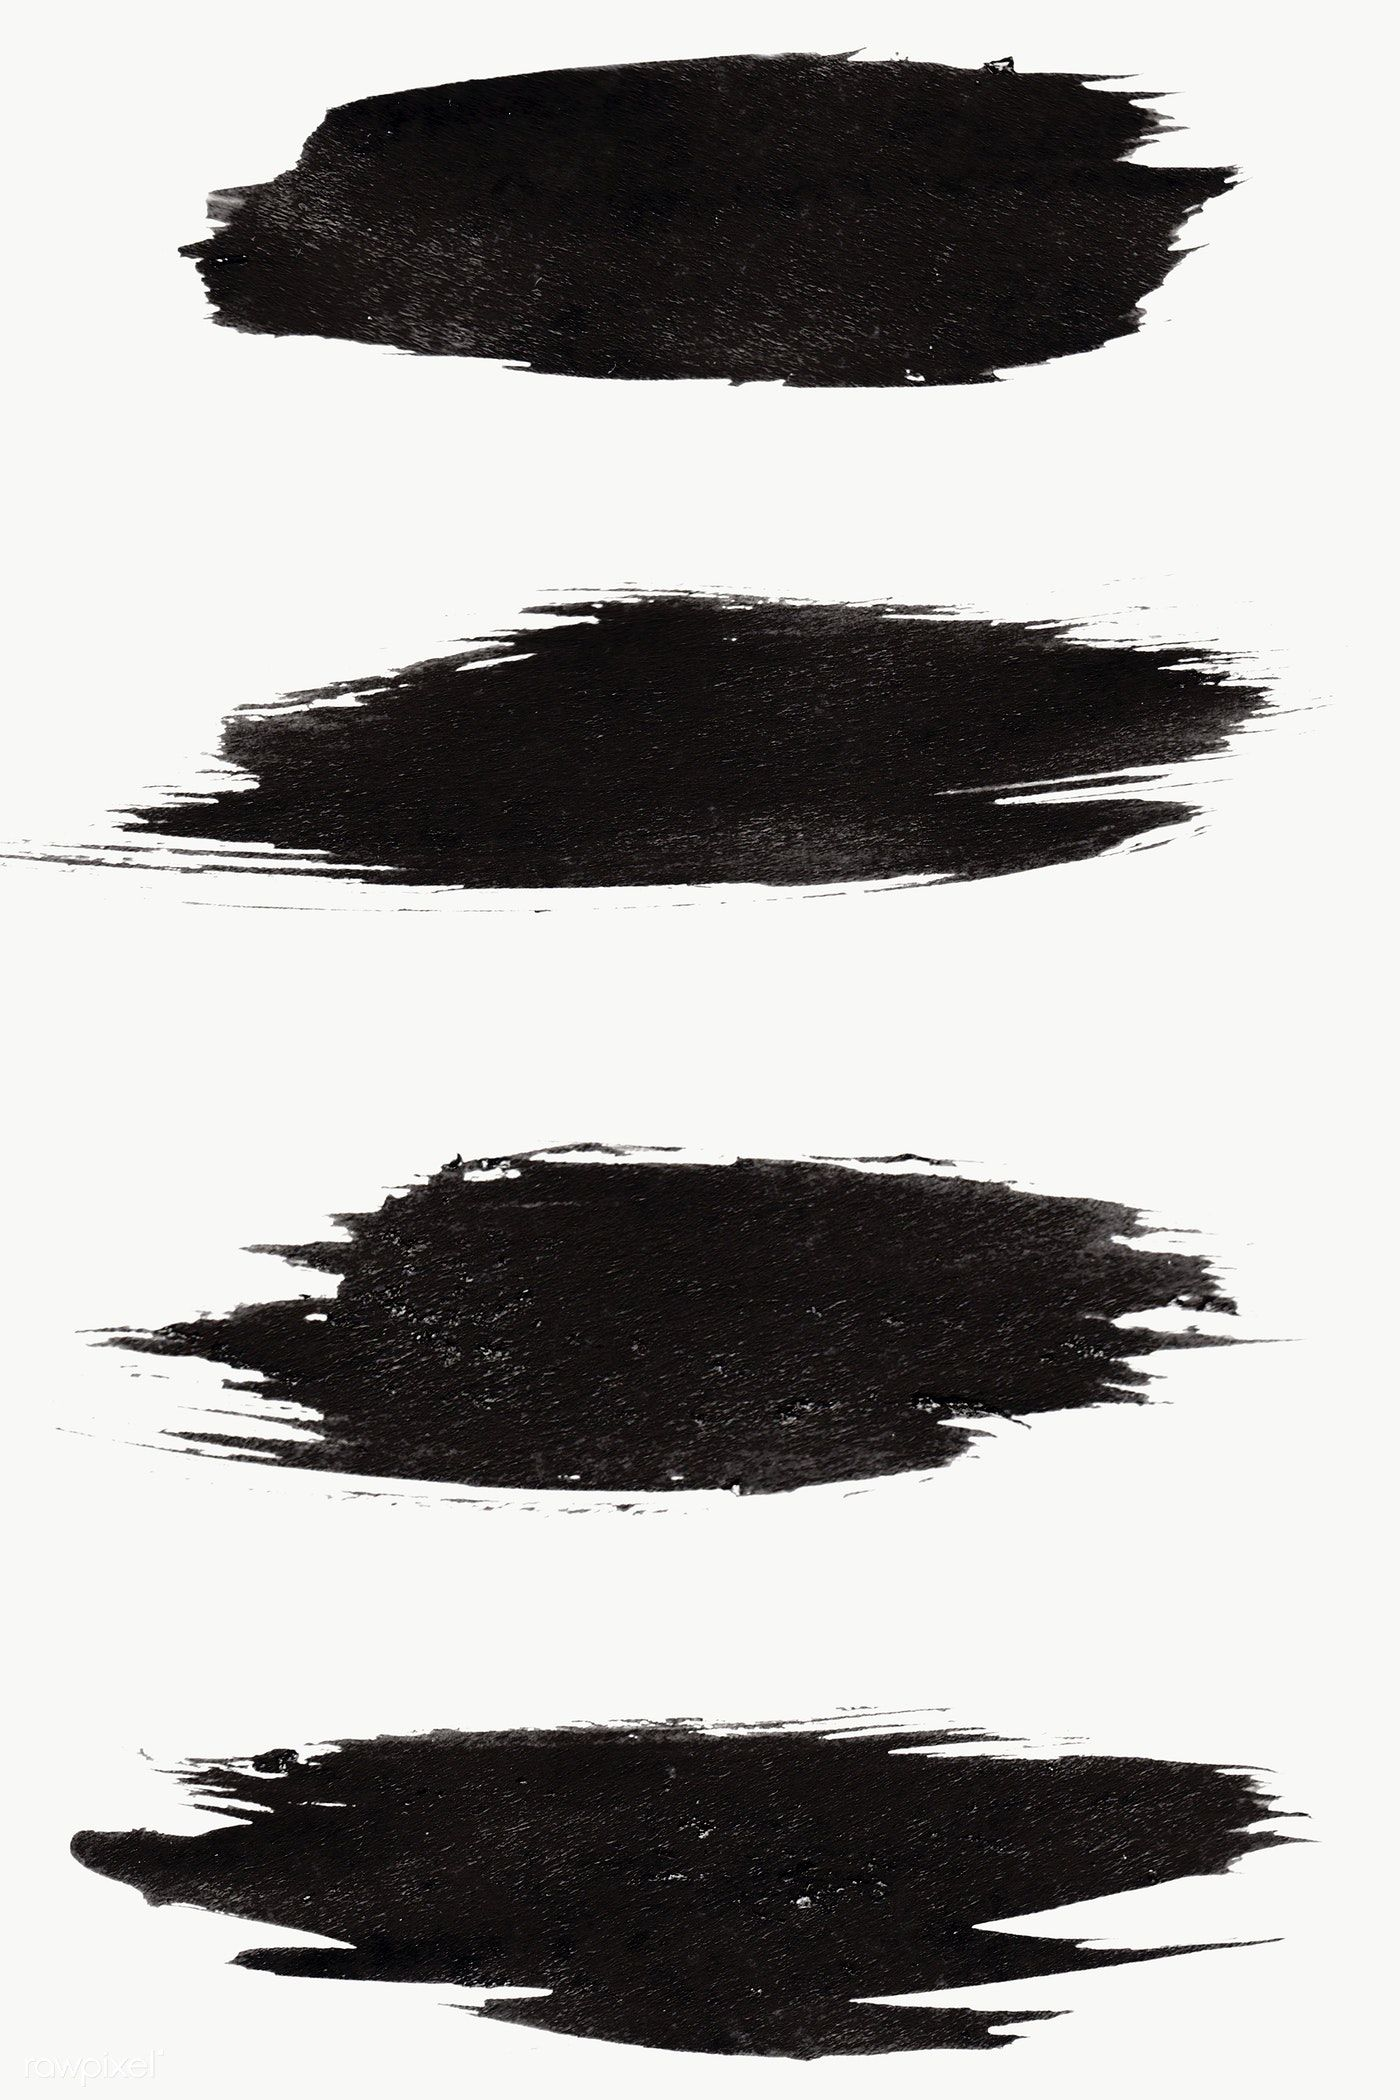 Abstract Black Brush Stroke Set Transparent Png Free Image By Rawpixel Com Nunny Brush Stroke Png Photoshop Watercolor Brush Strokes